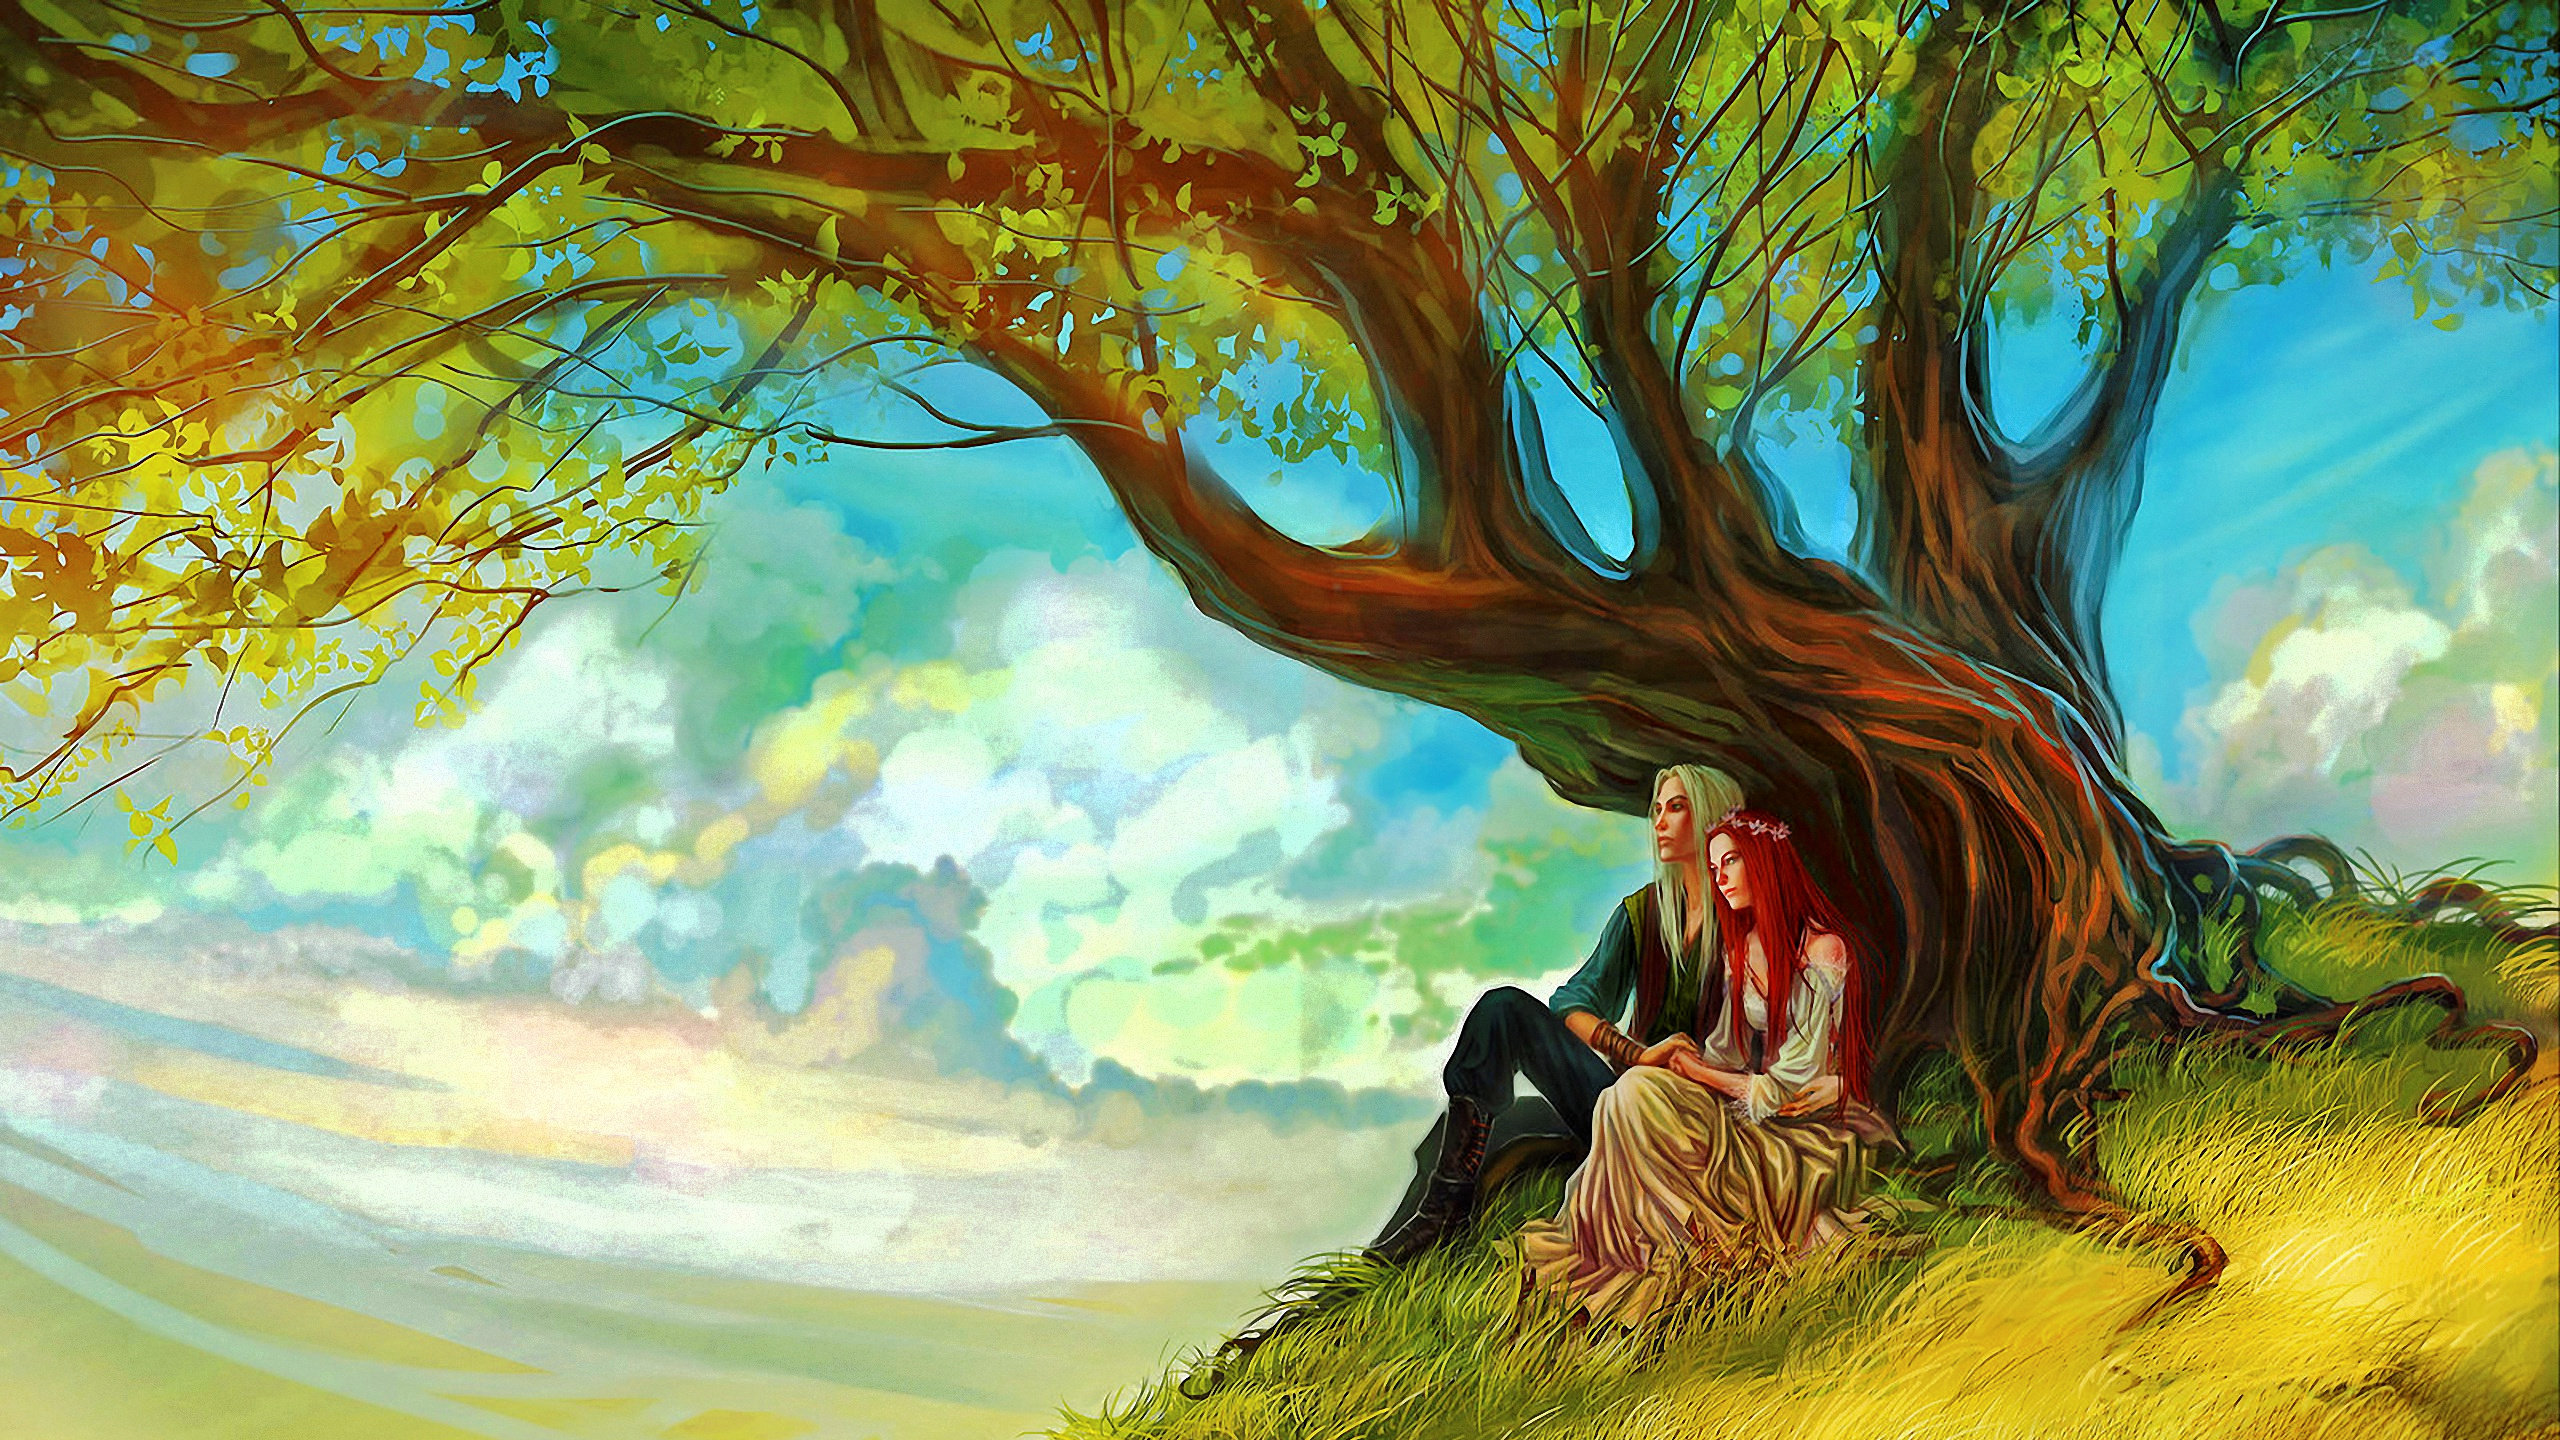 Best Wallpaper Love Fantasy - fantasy-love-couple-background-hd-2560x1440-305276  Collection_145149.jpg